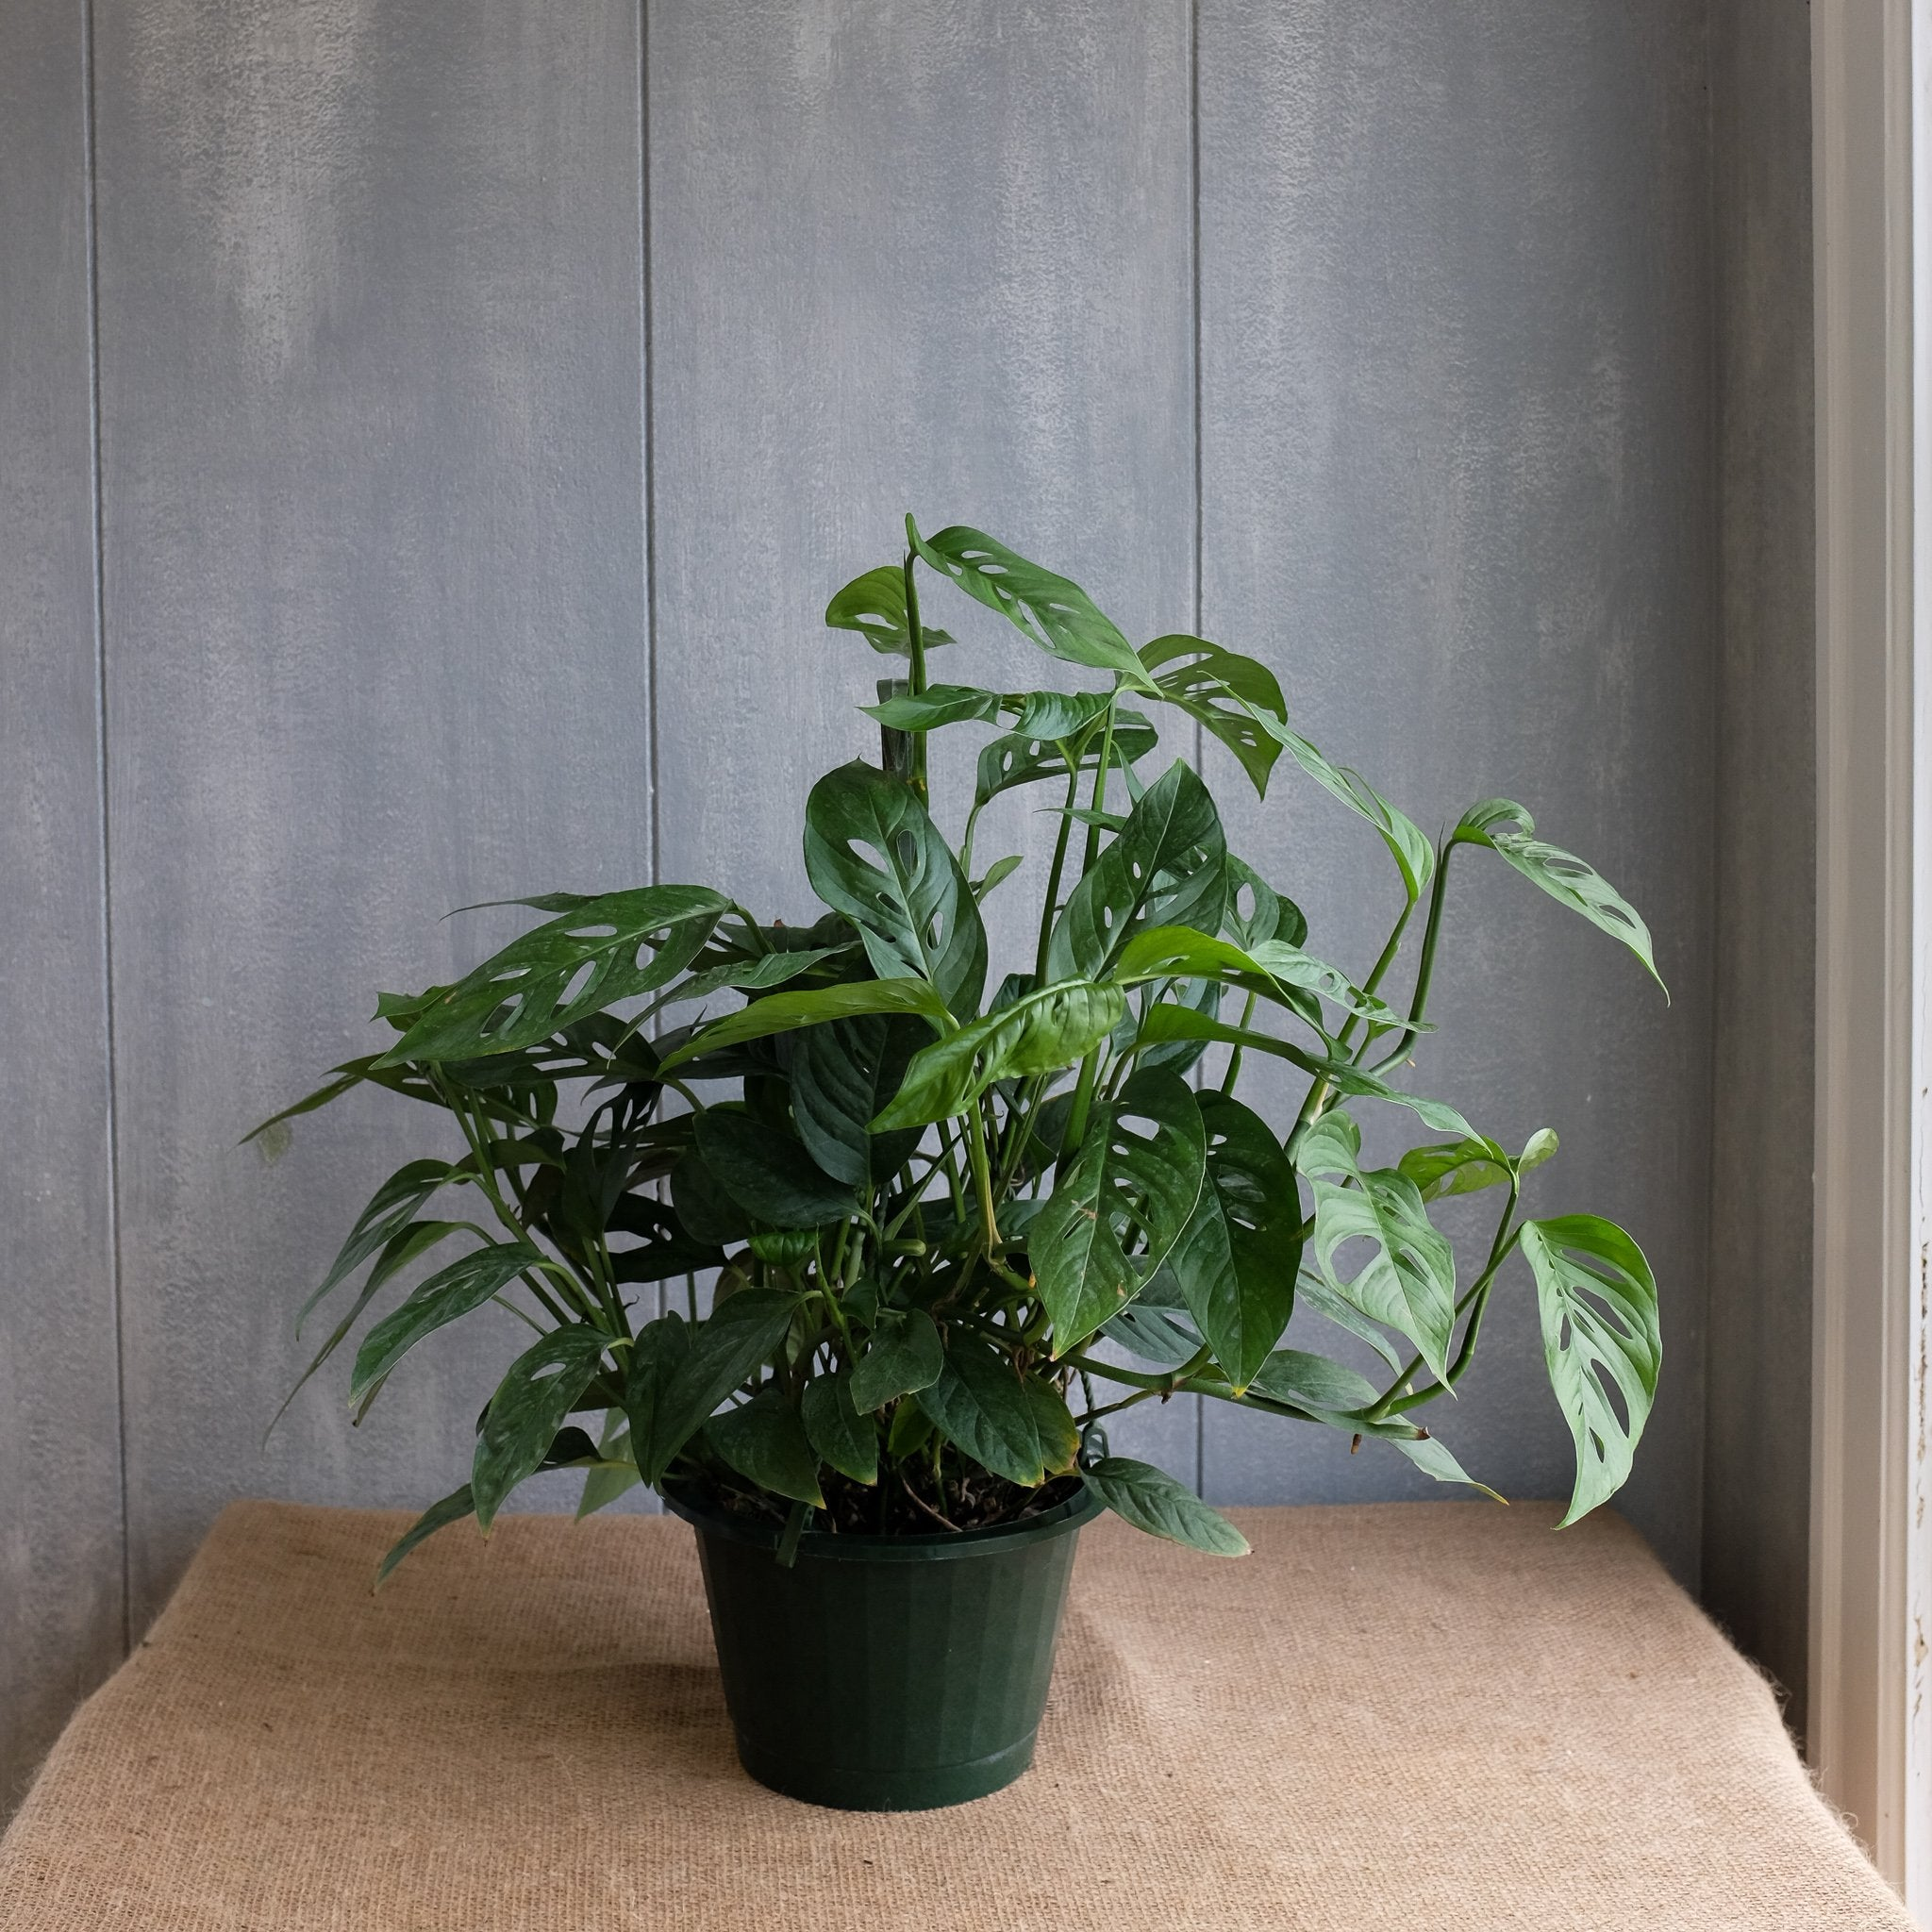 Monstera Adansonii L Swiss Cheese Vine L Michler S L Lexington Ky,How To Make Mexican Rice In Rice Cooker